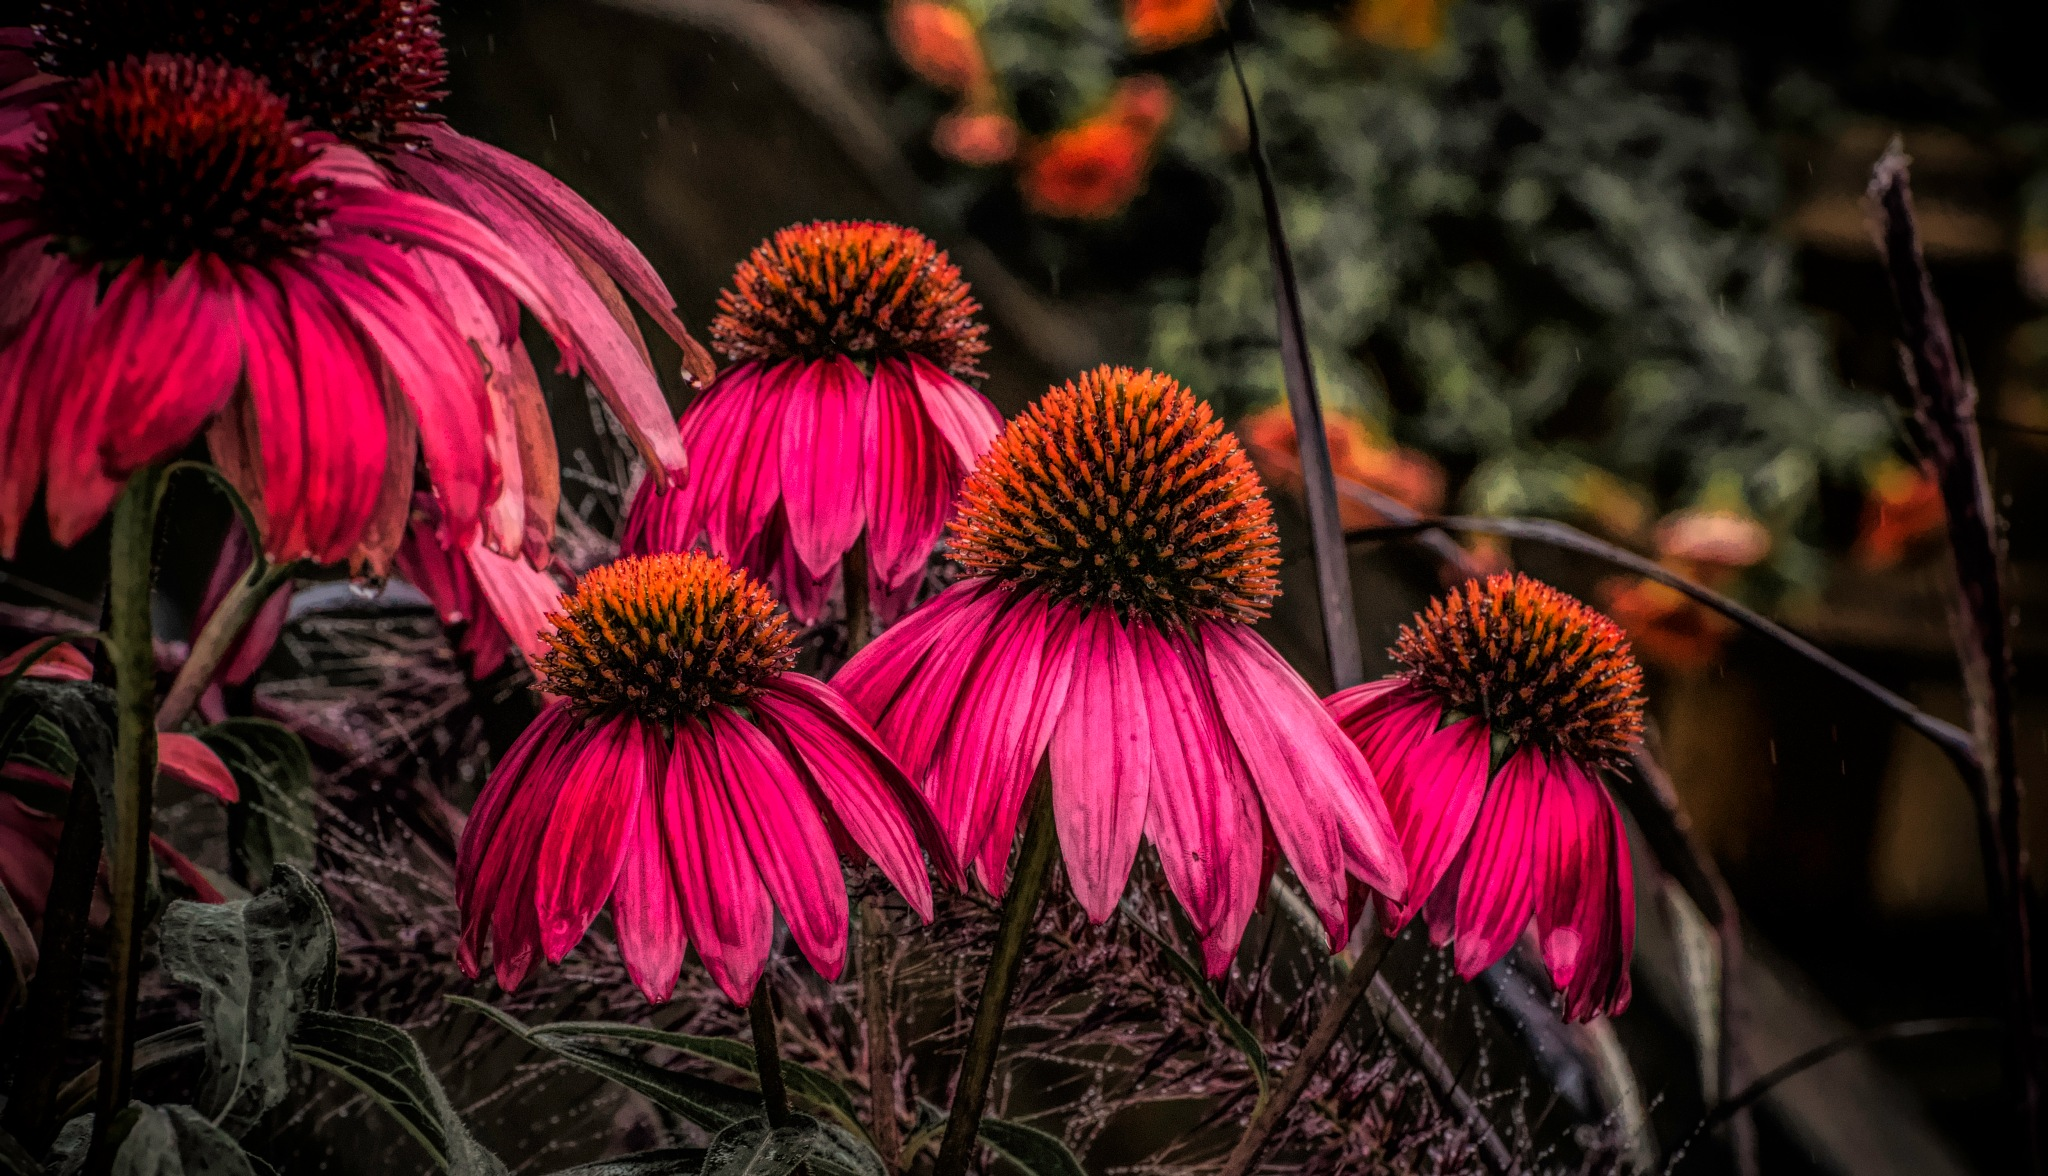 Flower 9-2-25 by JohnEllingson